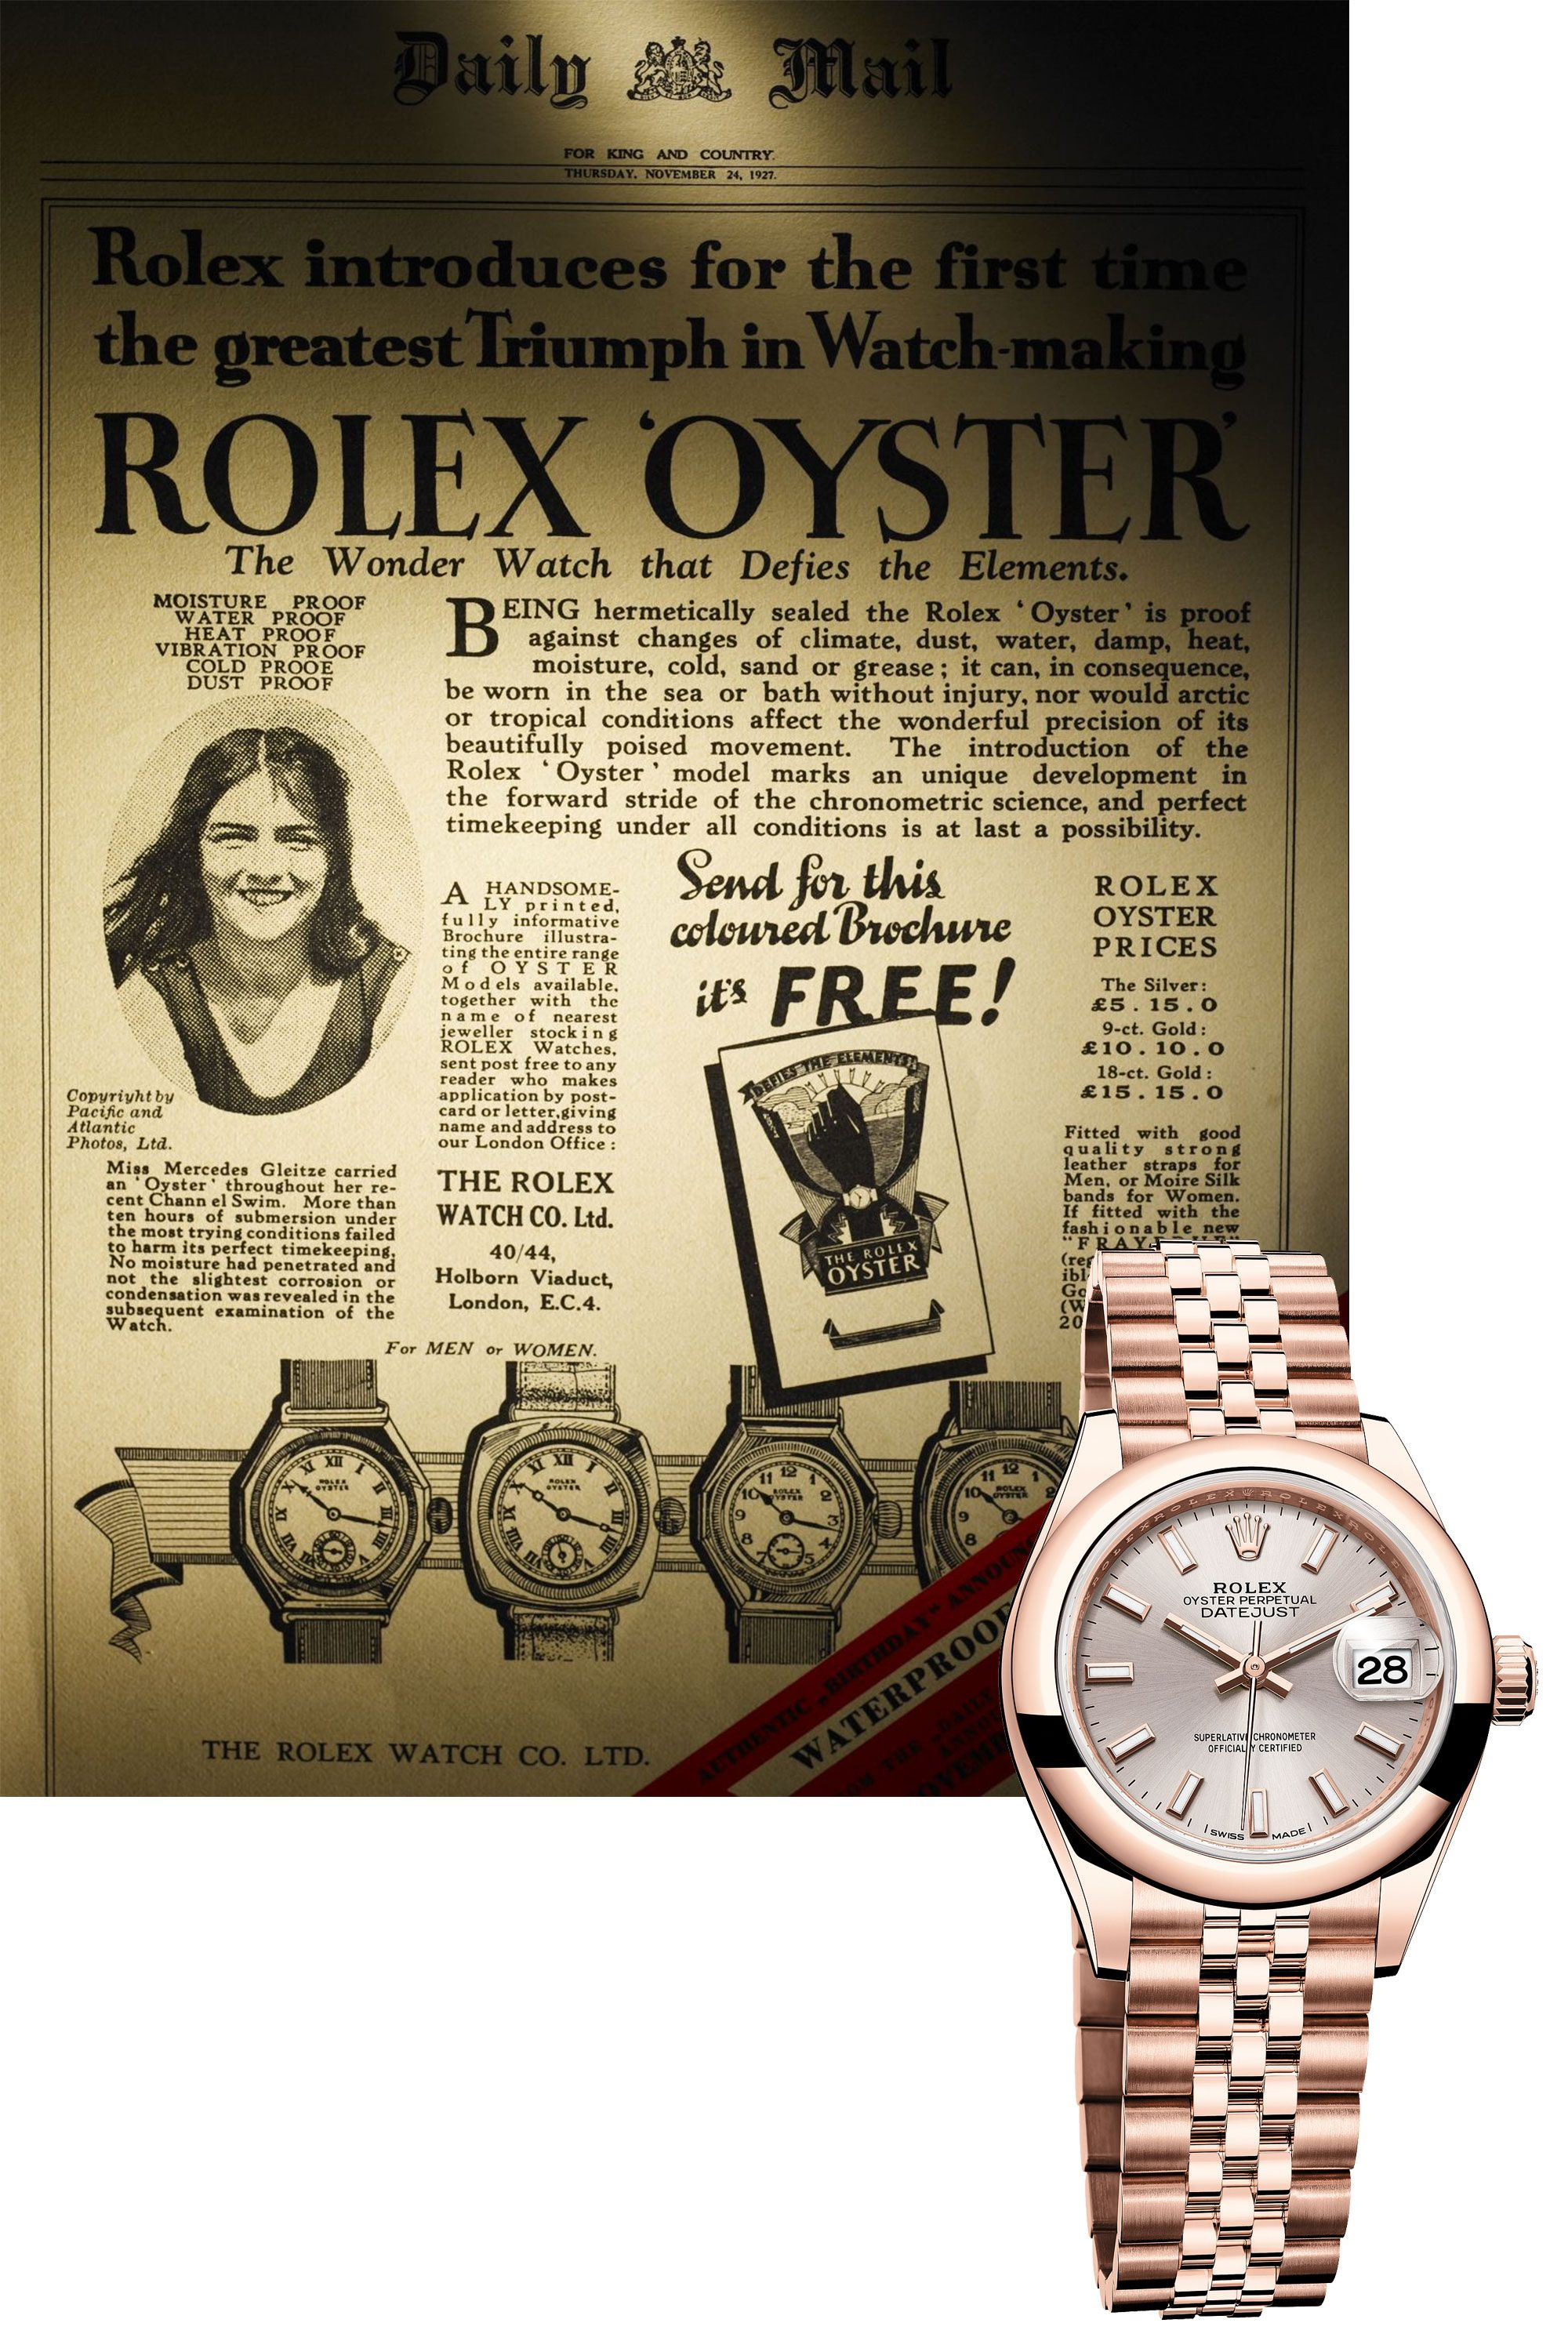 """<p>English Channel swimmer Mercedes Gleitze gave the water-resistant Rolex Oyster instant street cred—in fact, she introduced&nbsp&#x3B;the world to the&nbsp&#x3B;idea of brand ambassadorship. Today's ladies Datejust retains much of the original's aesthetic, including the distinctive dial with hour markers made of 18K&nbsp&#x3B;gold (the current covetable version is&nbsp&#x3B;available&nbsp&#x3B;in&nbsp&#x3B;Everose&nbsp&#x3B;pink gold).</p><p><em data-redactor-tag=""""em"""" data-verified=""""redactor"""">Lady Datejust 28 in Everose, $25,650&#x3B;&nbsp&#x3B;</em><a href=""""https://www.rolex.com/watches/datejust/m279165-0003.html"""" target=""""_blank"""" data-tracking-id=""""recirc-text-link""""><em data-redactor-tag=""""em"""" data-verified=""""redactor"""">rolex.com</em></a></p>"""